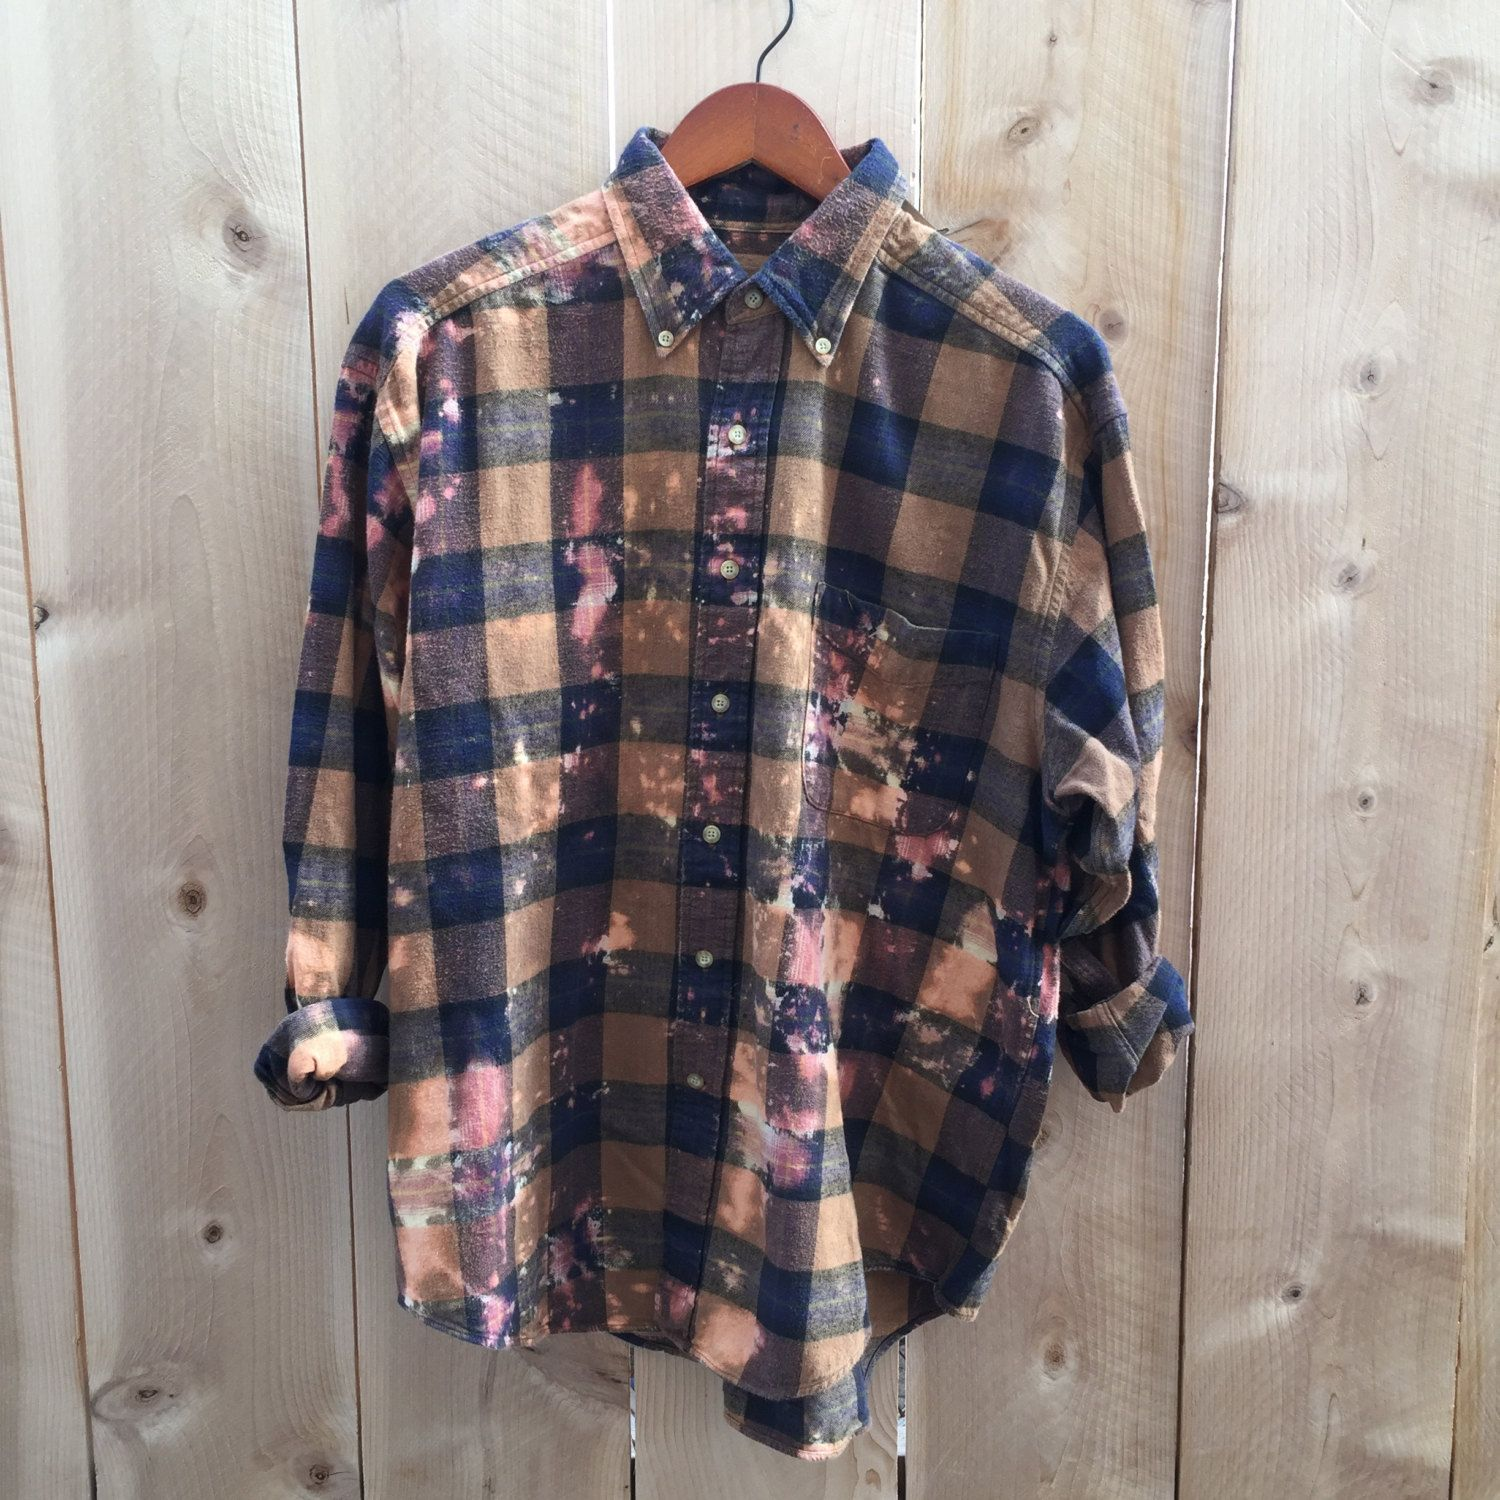 055928556a2b Distressed flannel shirt, brown blue plaid, grunge clothing, hipster  clothing, oversized vintage soft, large gender neutral upcycled clothes by  RestoredRose ...